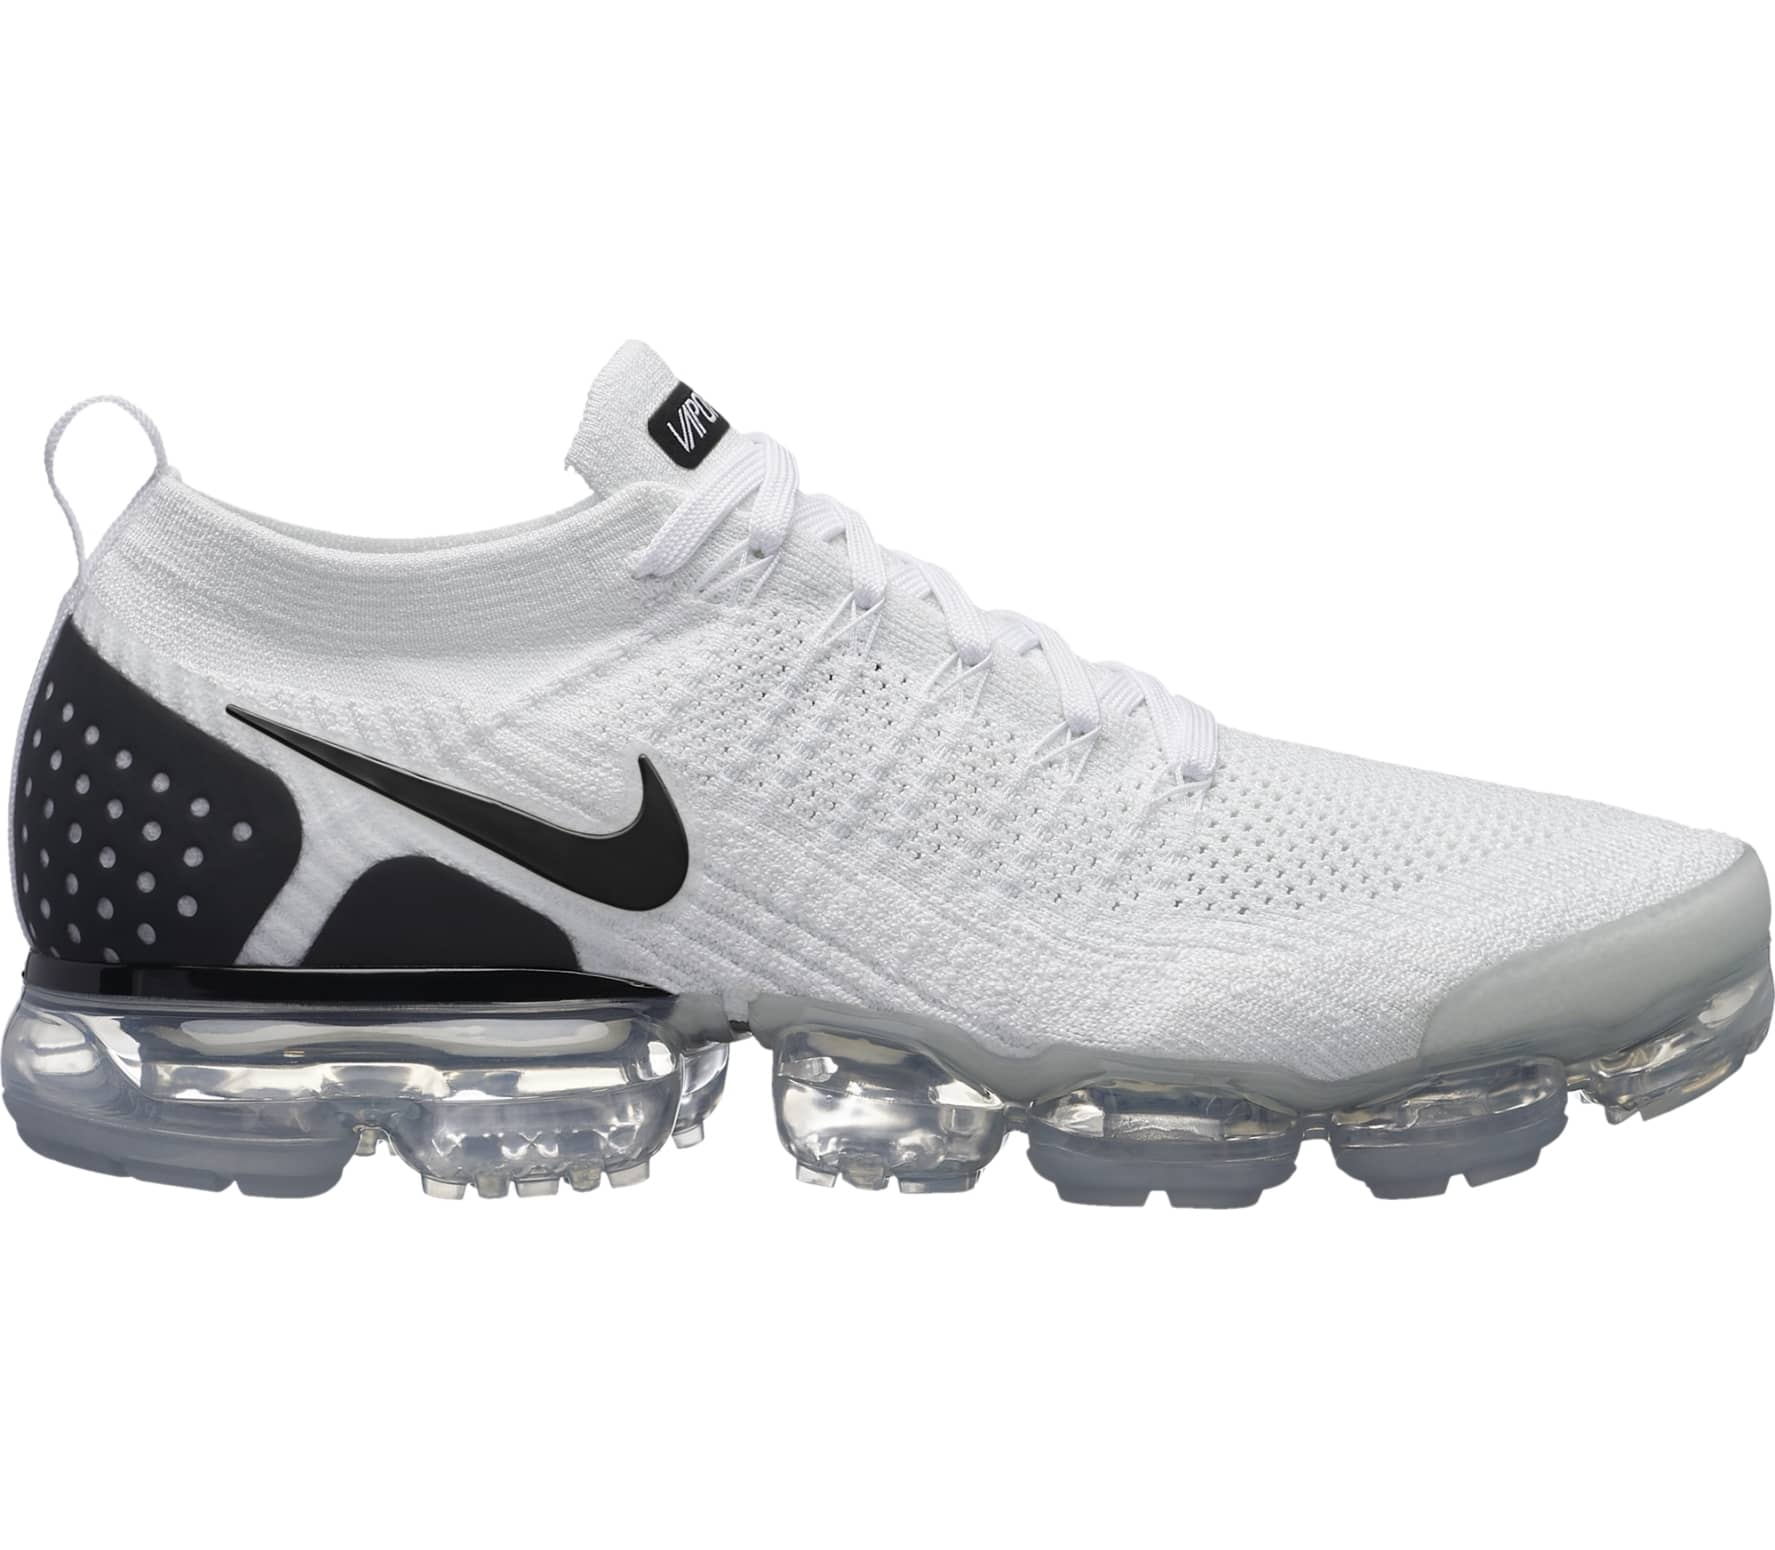 ca63dc23c08ab Nike - Air VaporMax Flyknit 2 men s running shoes (white black ...